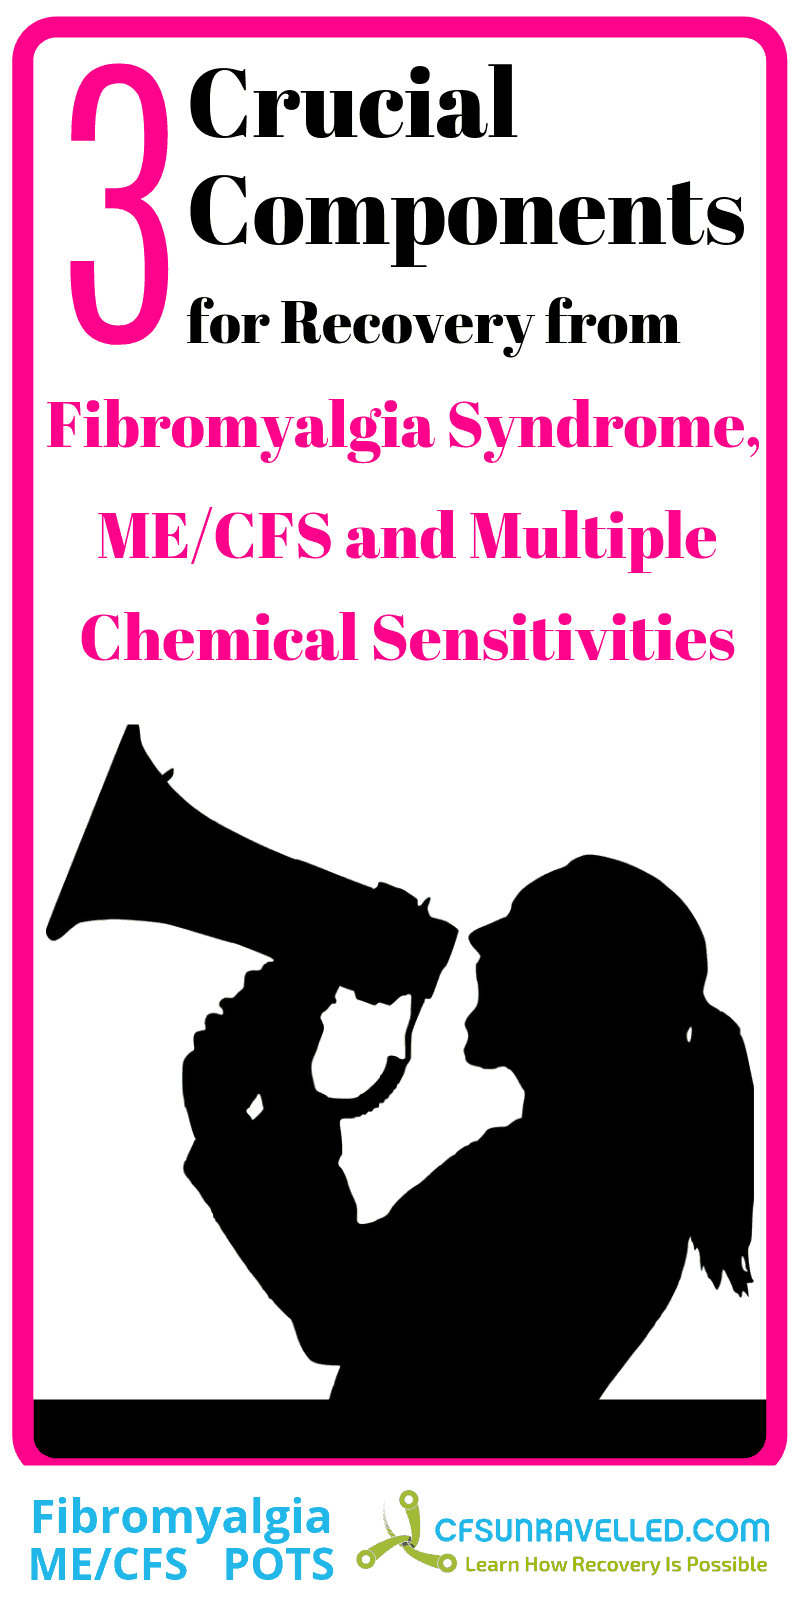 poster with person shouting into megaphone about components of me/cfs fibromyaliga MCS recovery